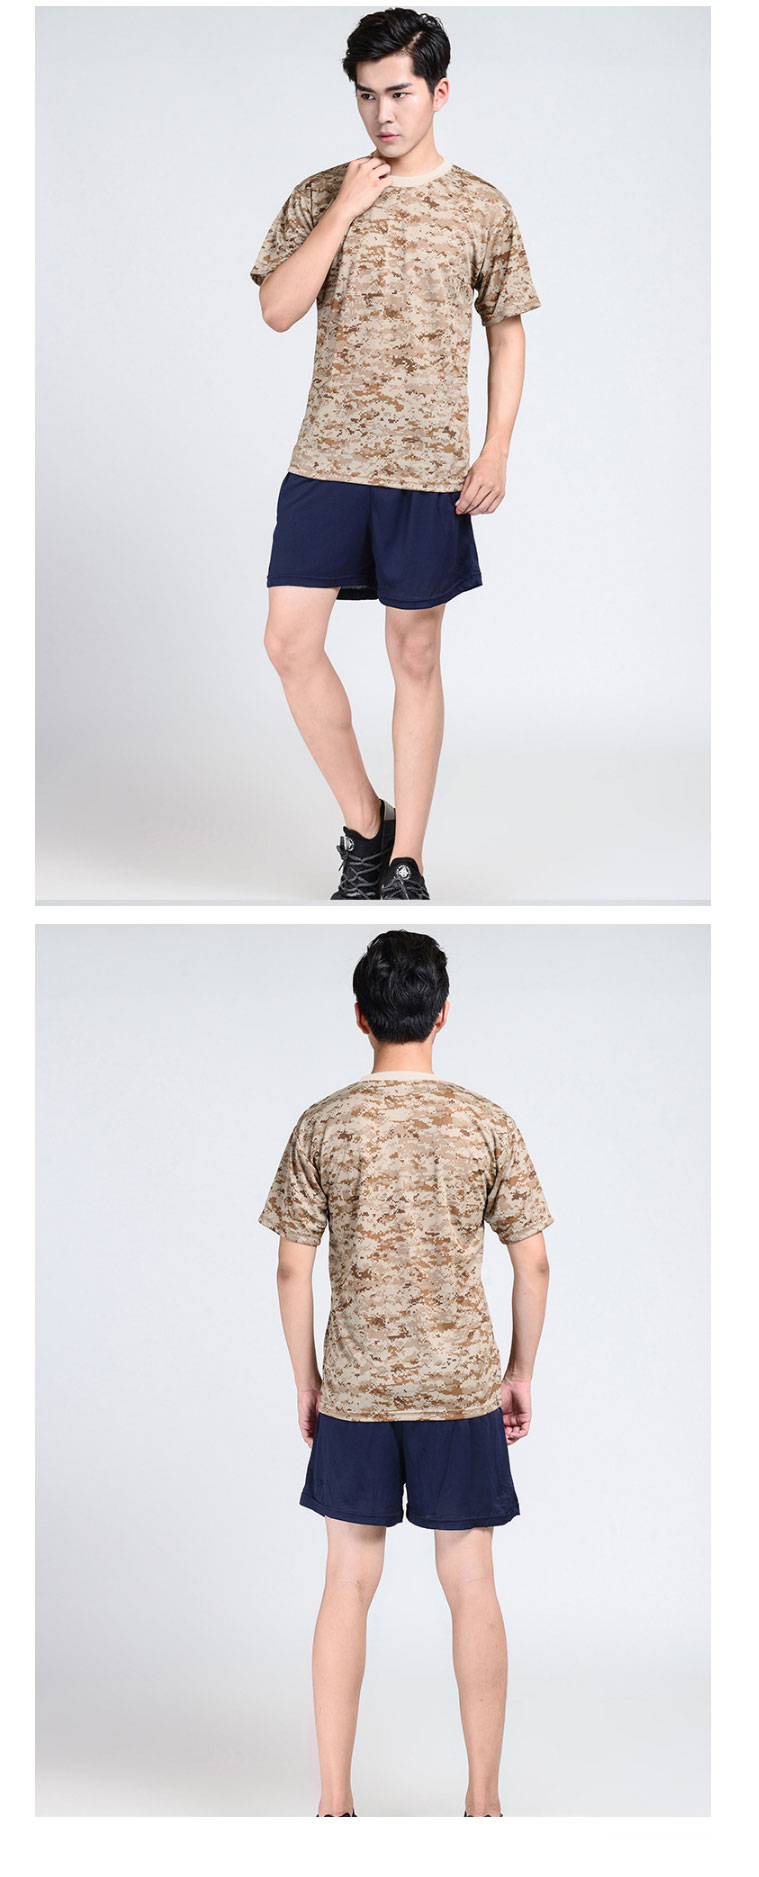 Wholesale Military Camouflage T-Shirts Combat Tactical Army Desert Digital Camo T Shirt Mens in the stock